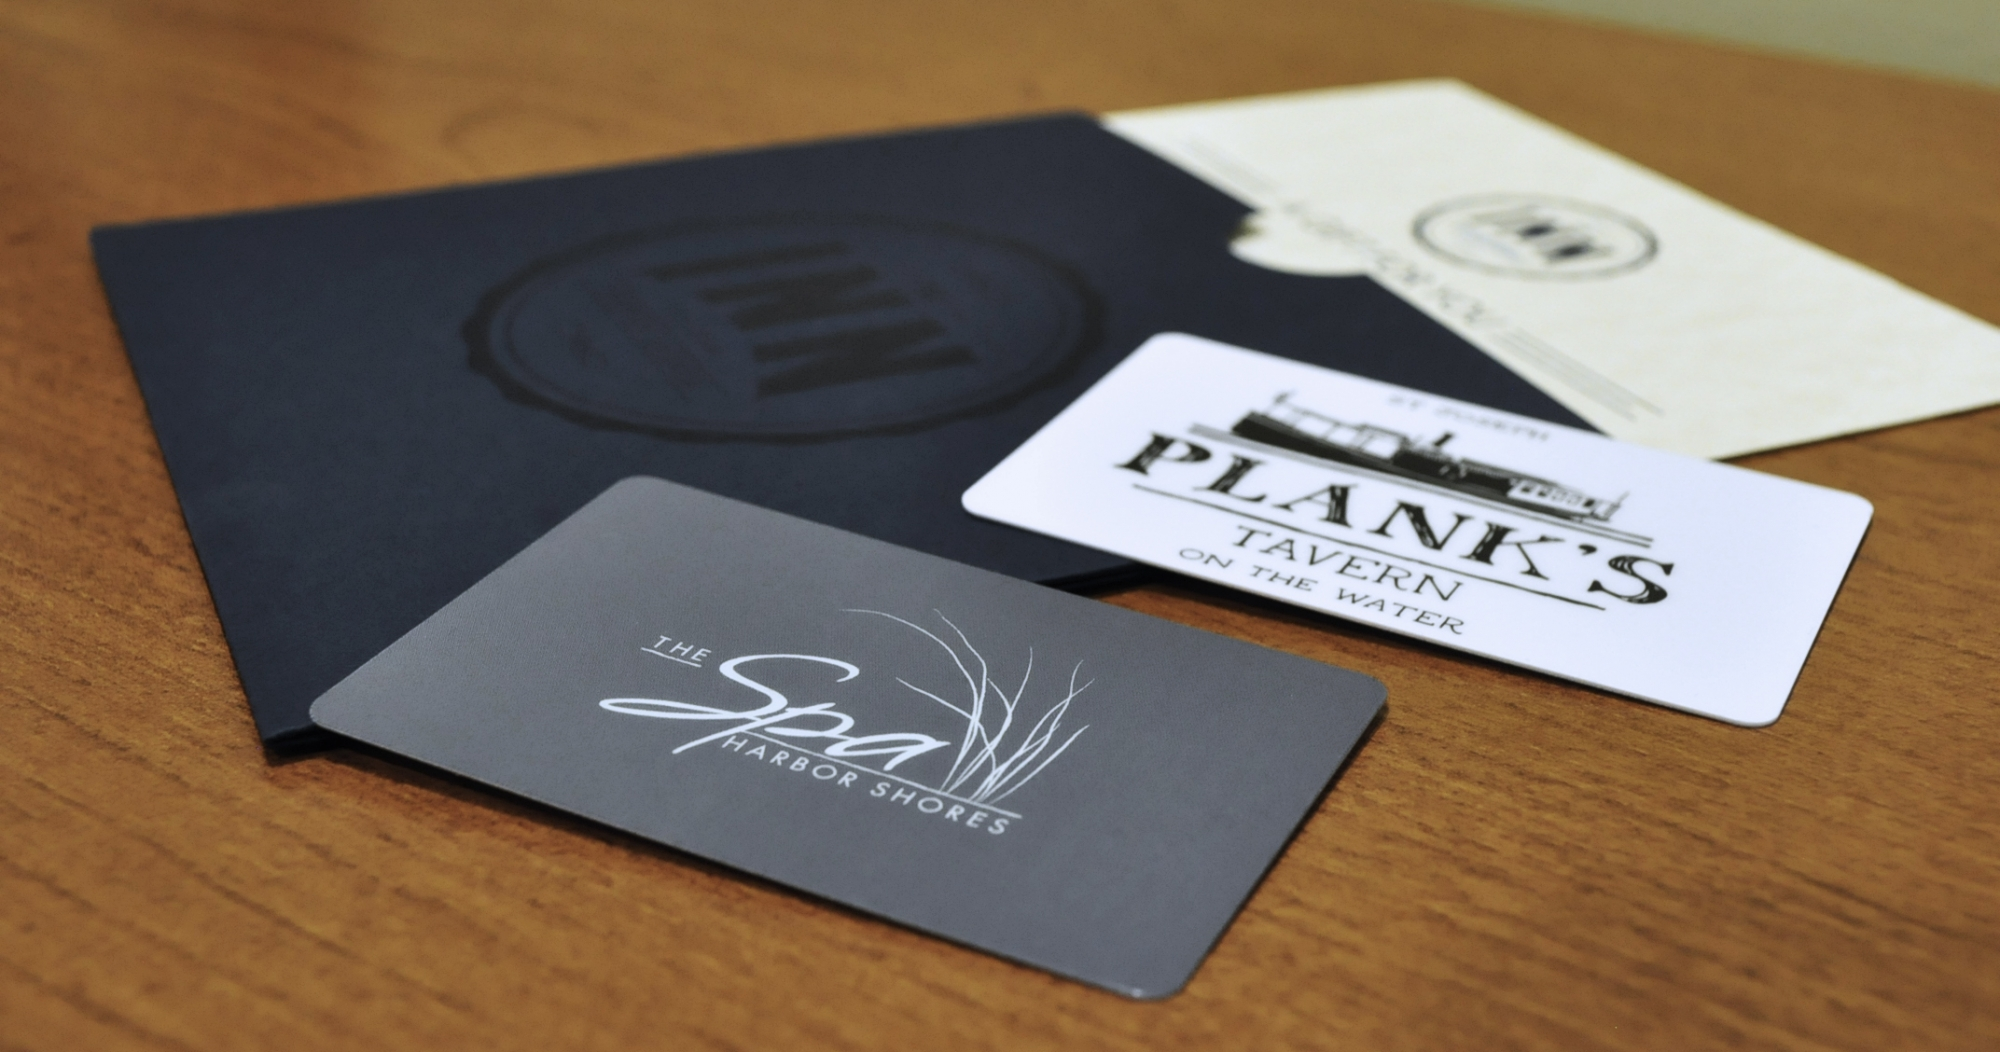 Planks Tavern Gift Card